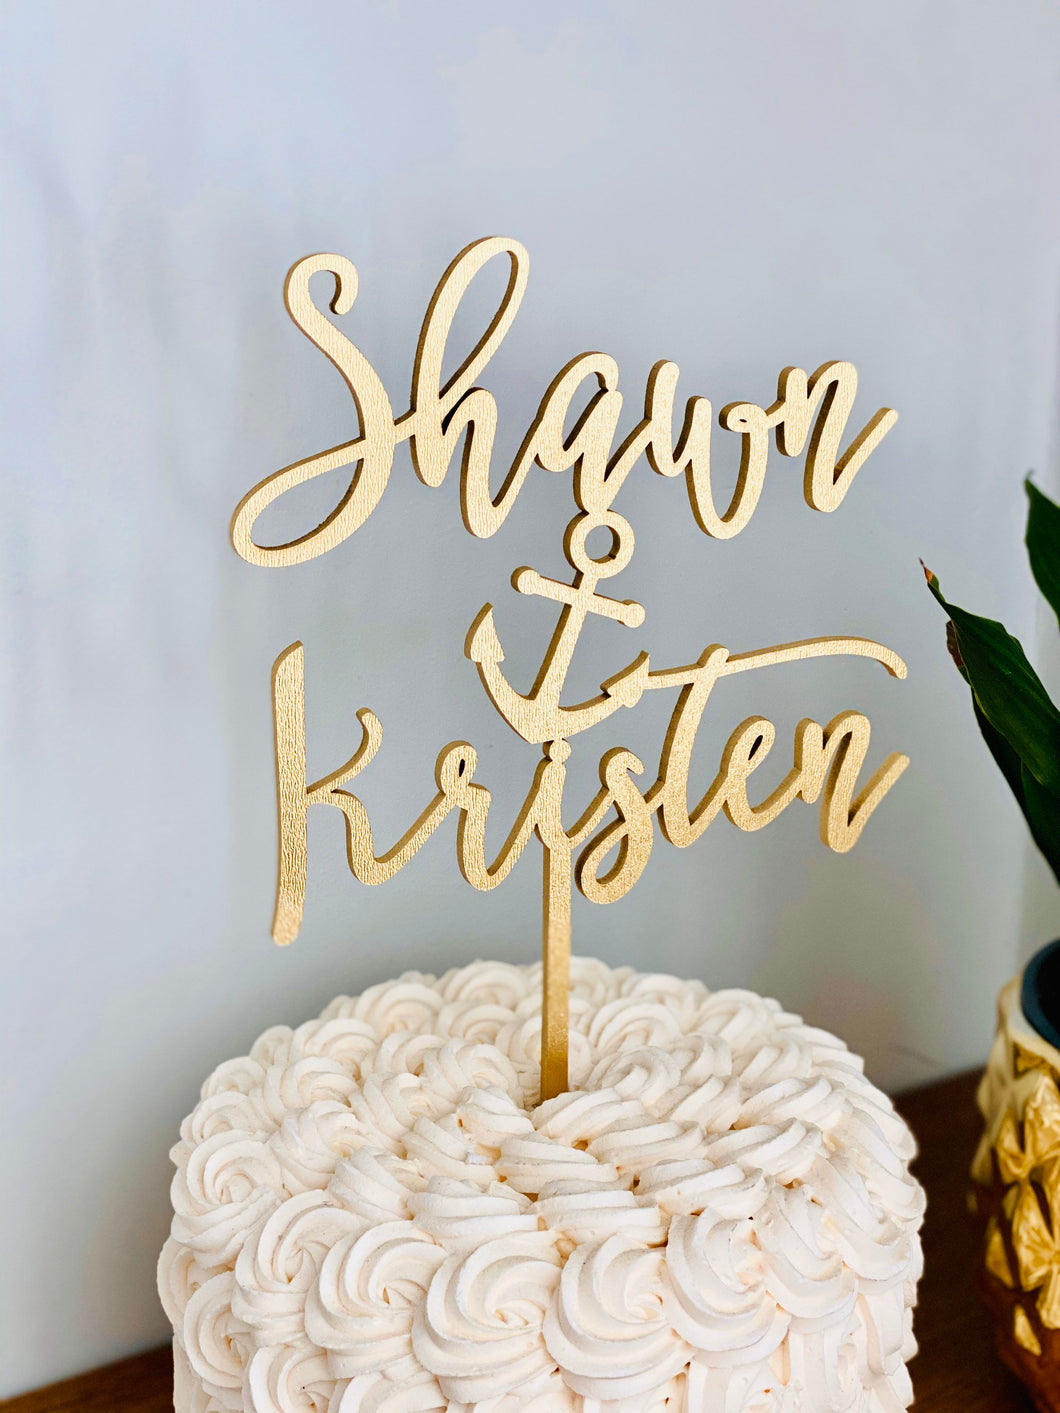 Personalized Name Anchor Name Cake Topper, 6